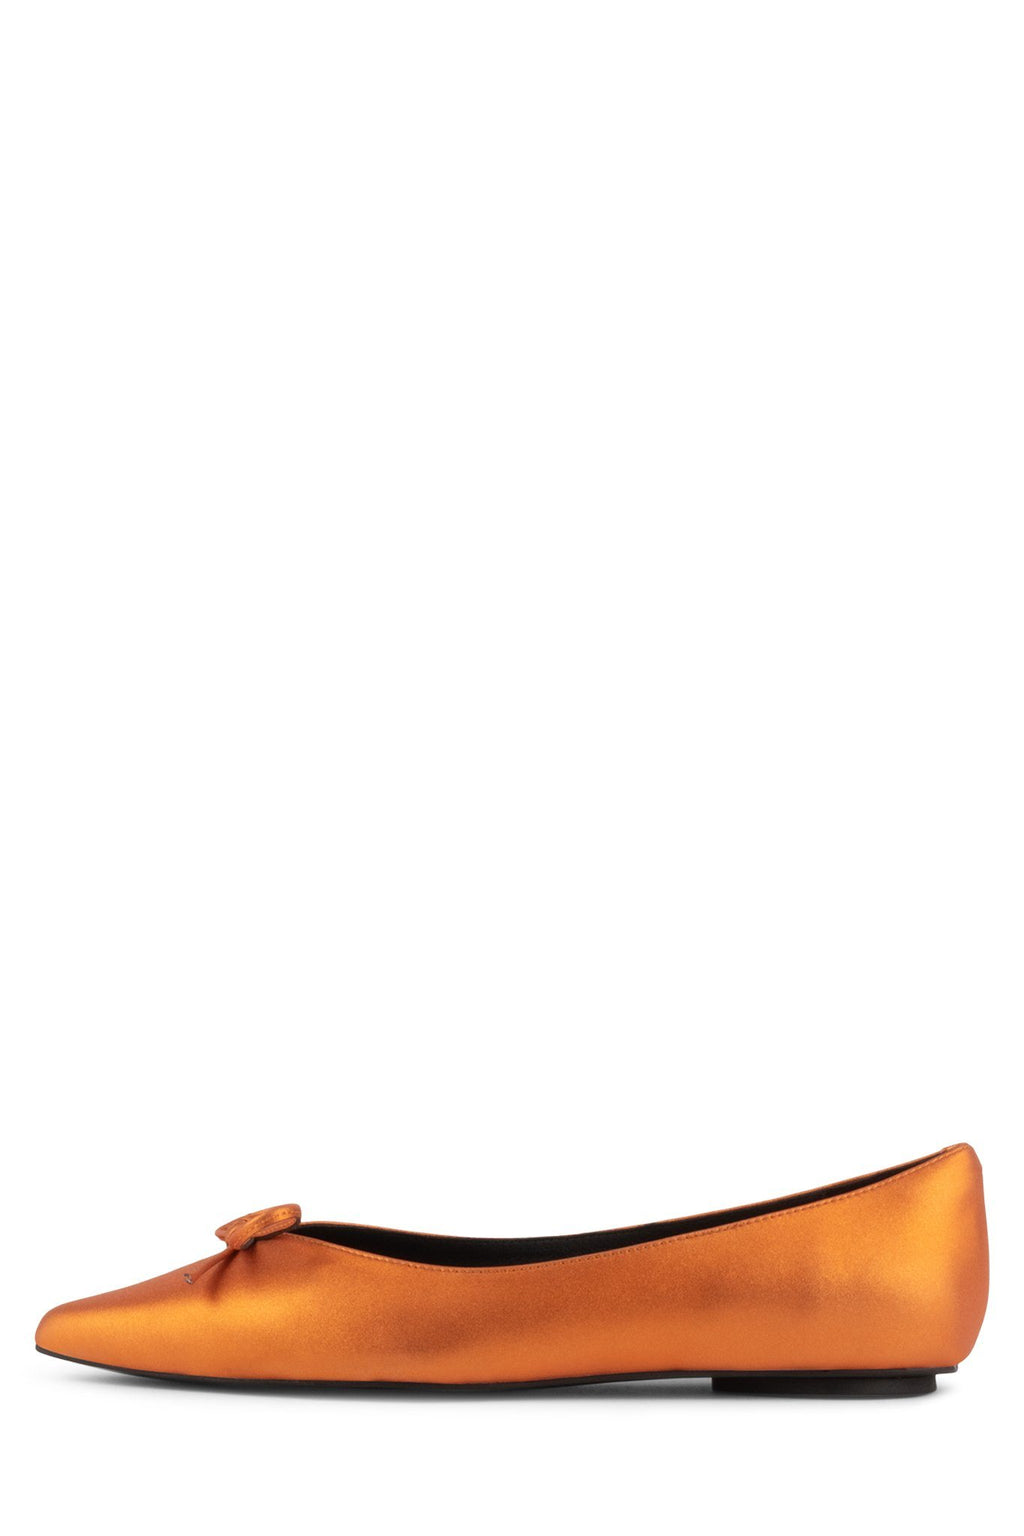 LAVINIA Flat DV Orange Metallic 6